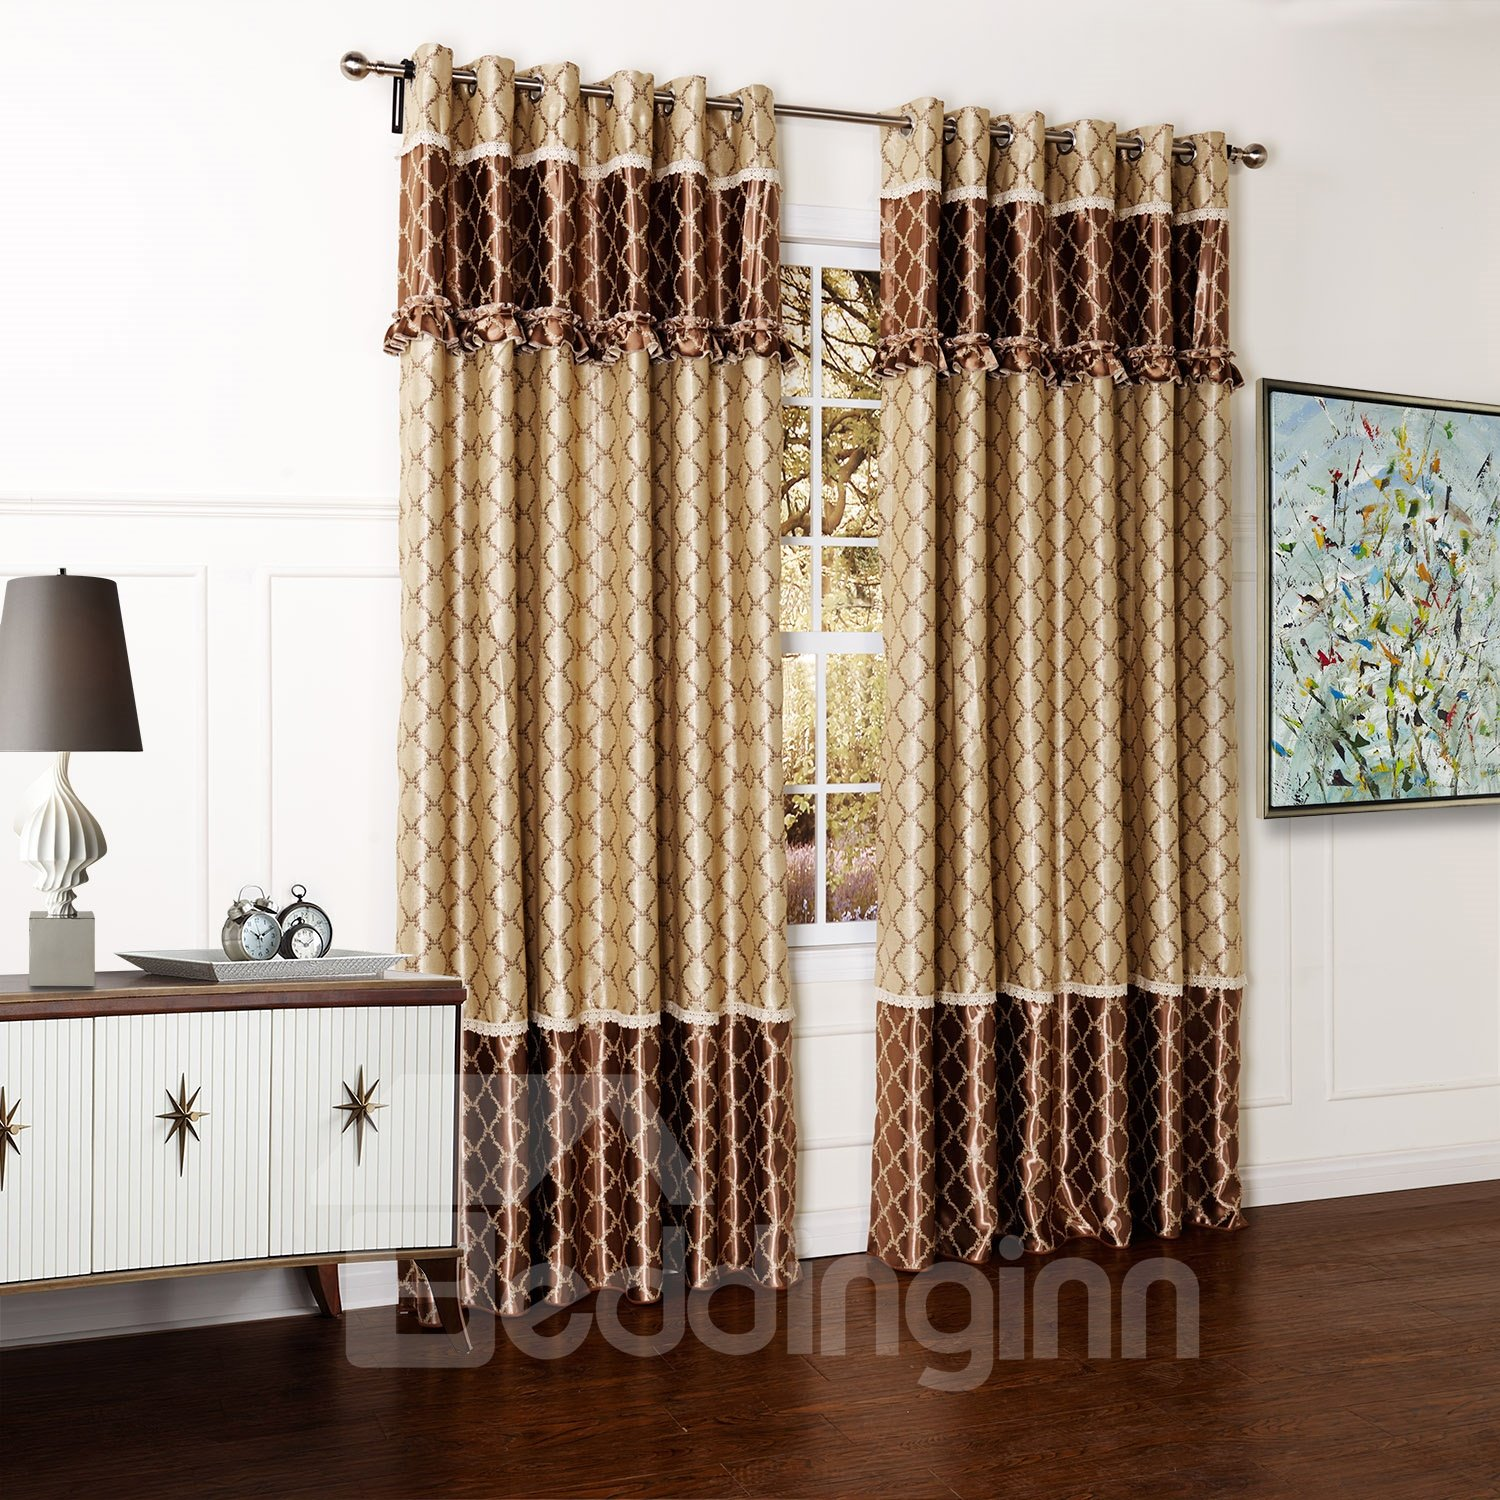 Top Quality Grommet Top Pretty Custom Curtain